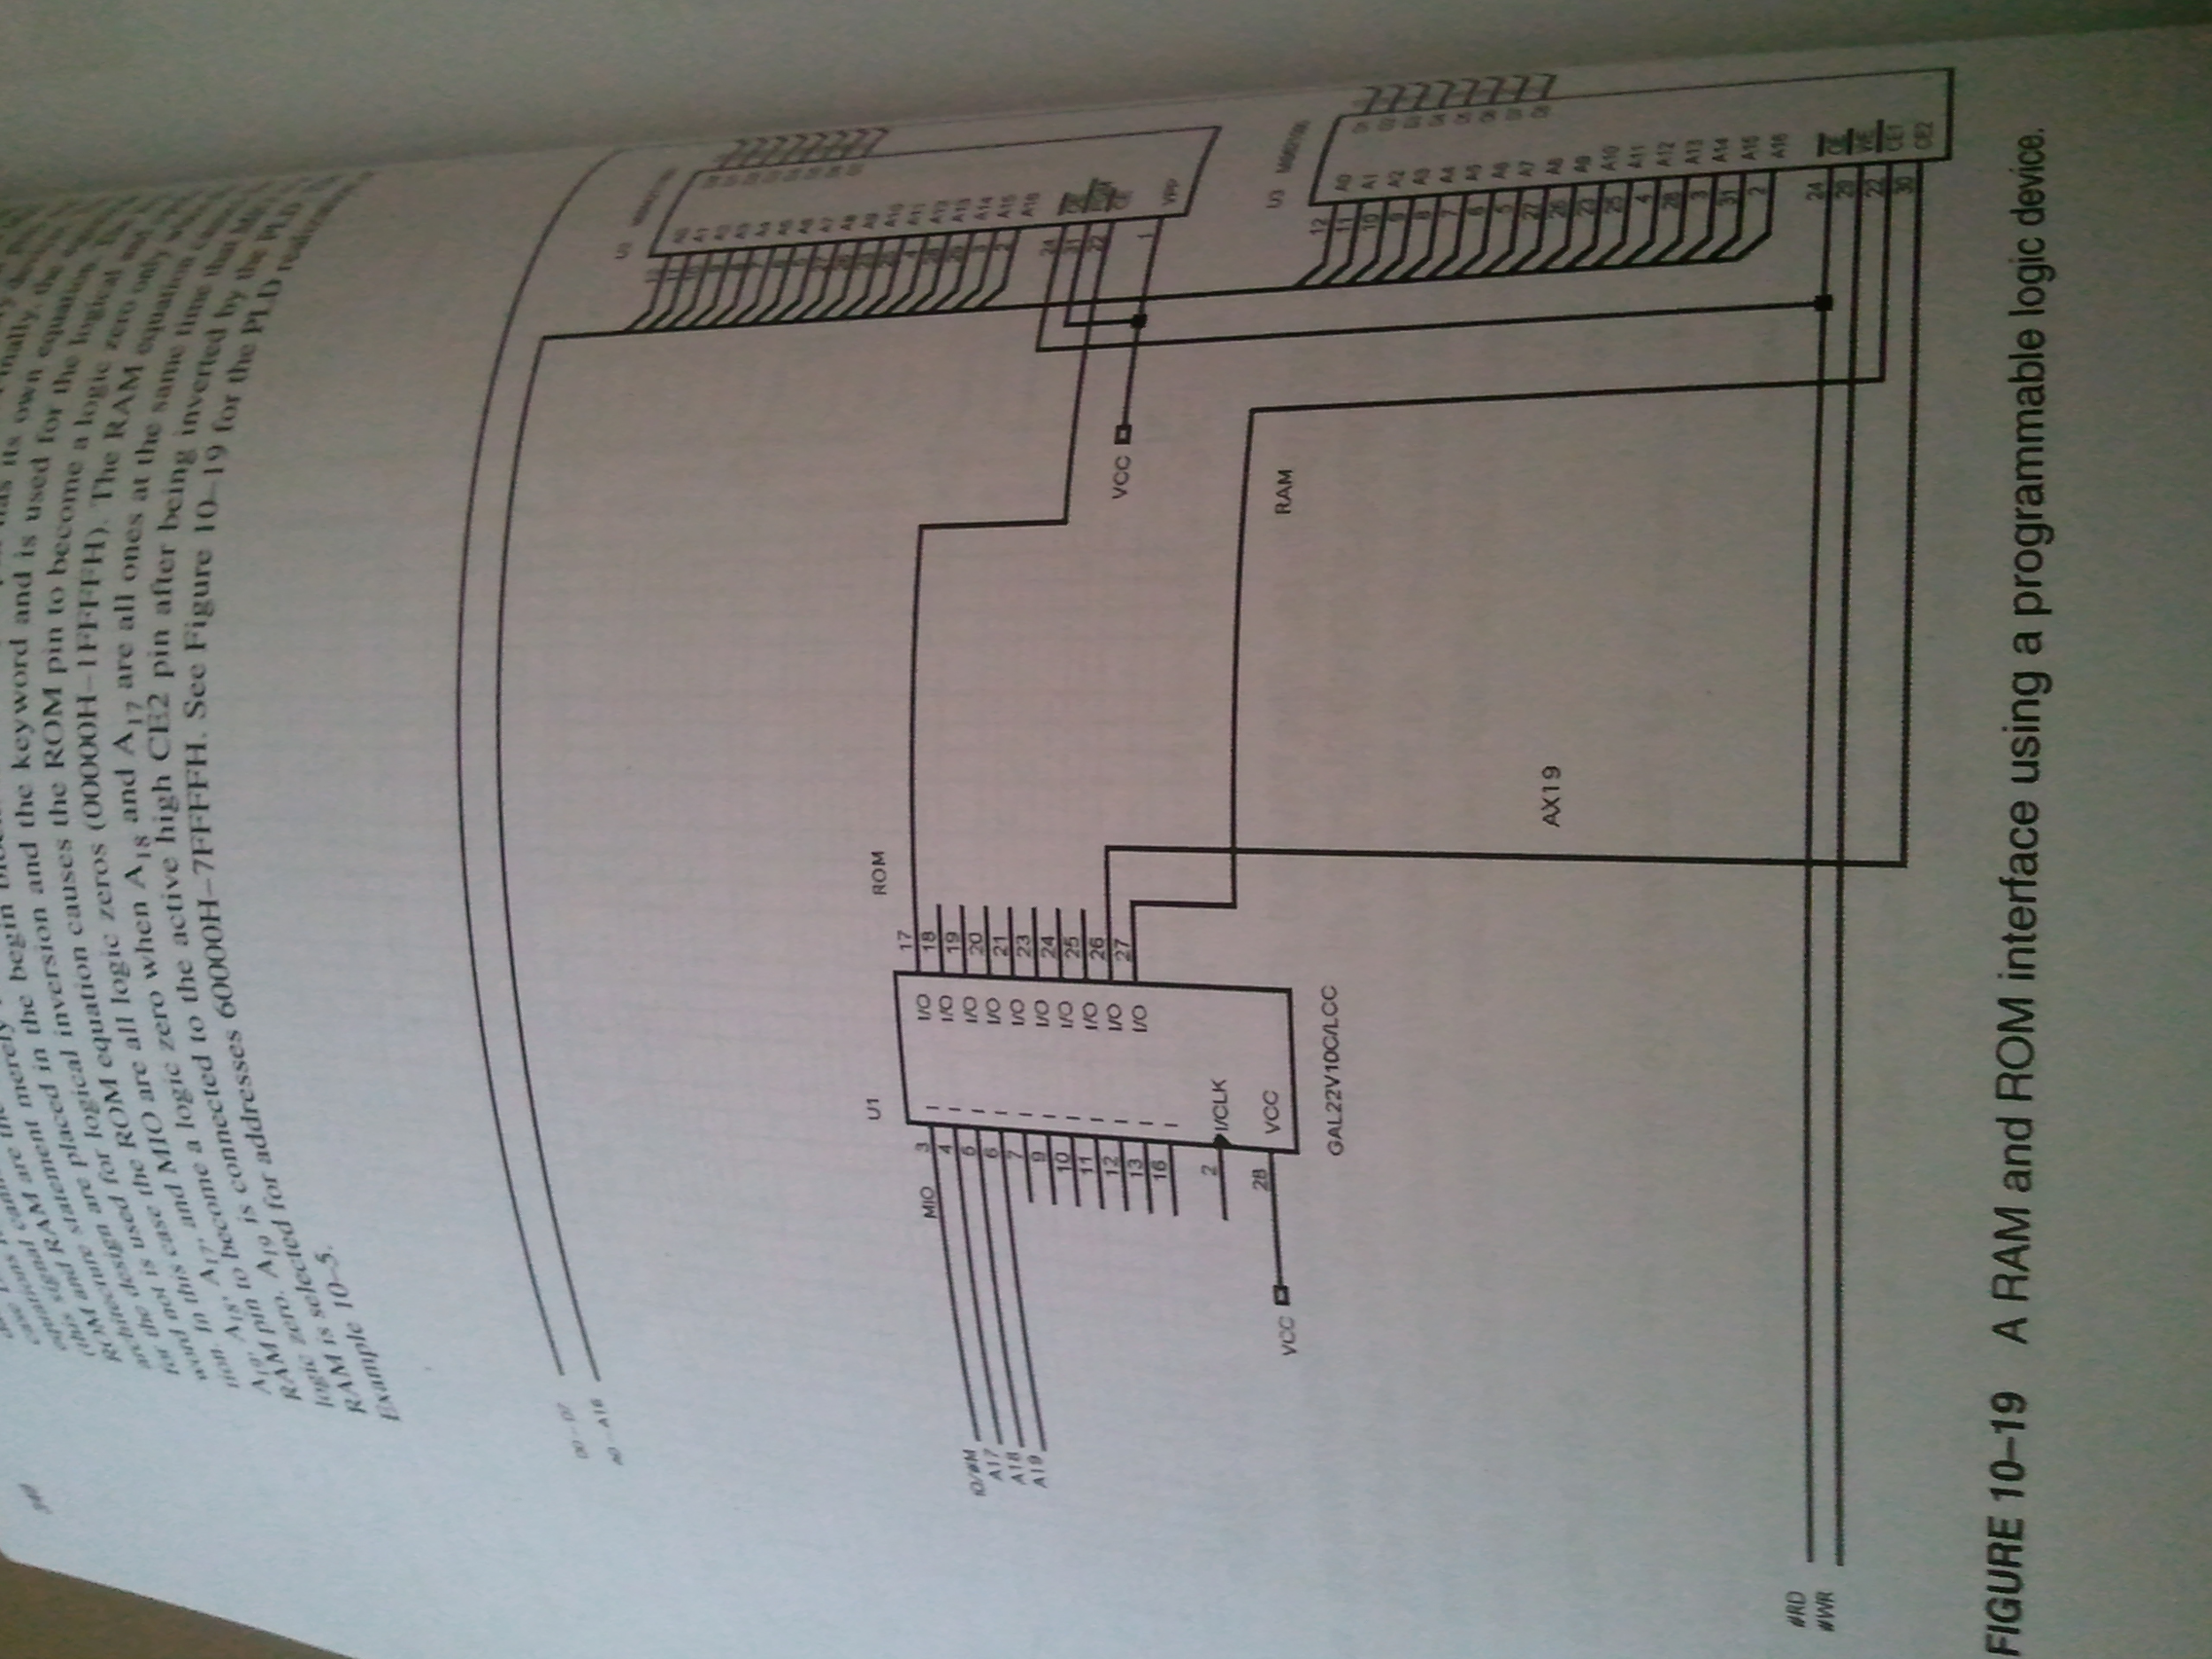 Pentium 4 Circuit Diagram Wiring Diagrams Modify The Of Figure 10 19 By Rewriting Th Chegg Com Two Amps